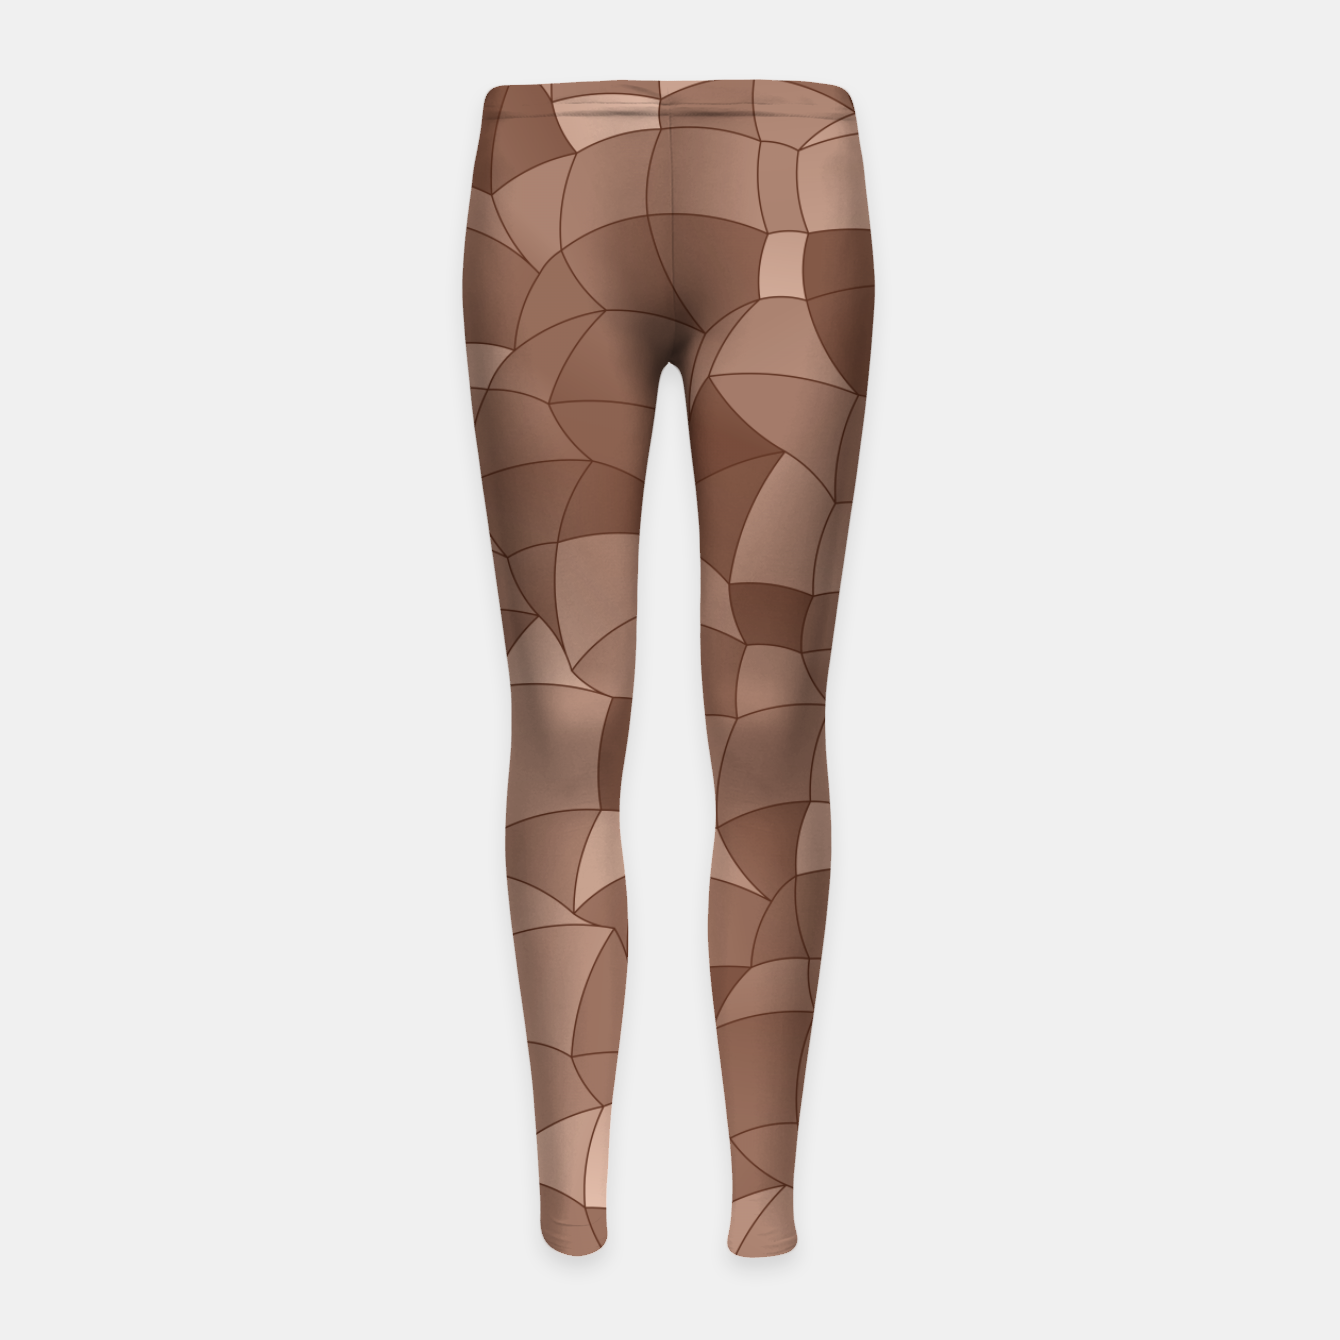 Image of Geometric Shapes Fragments Pattern 2 cr Girl's leggings - Live Heroes